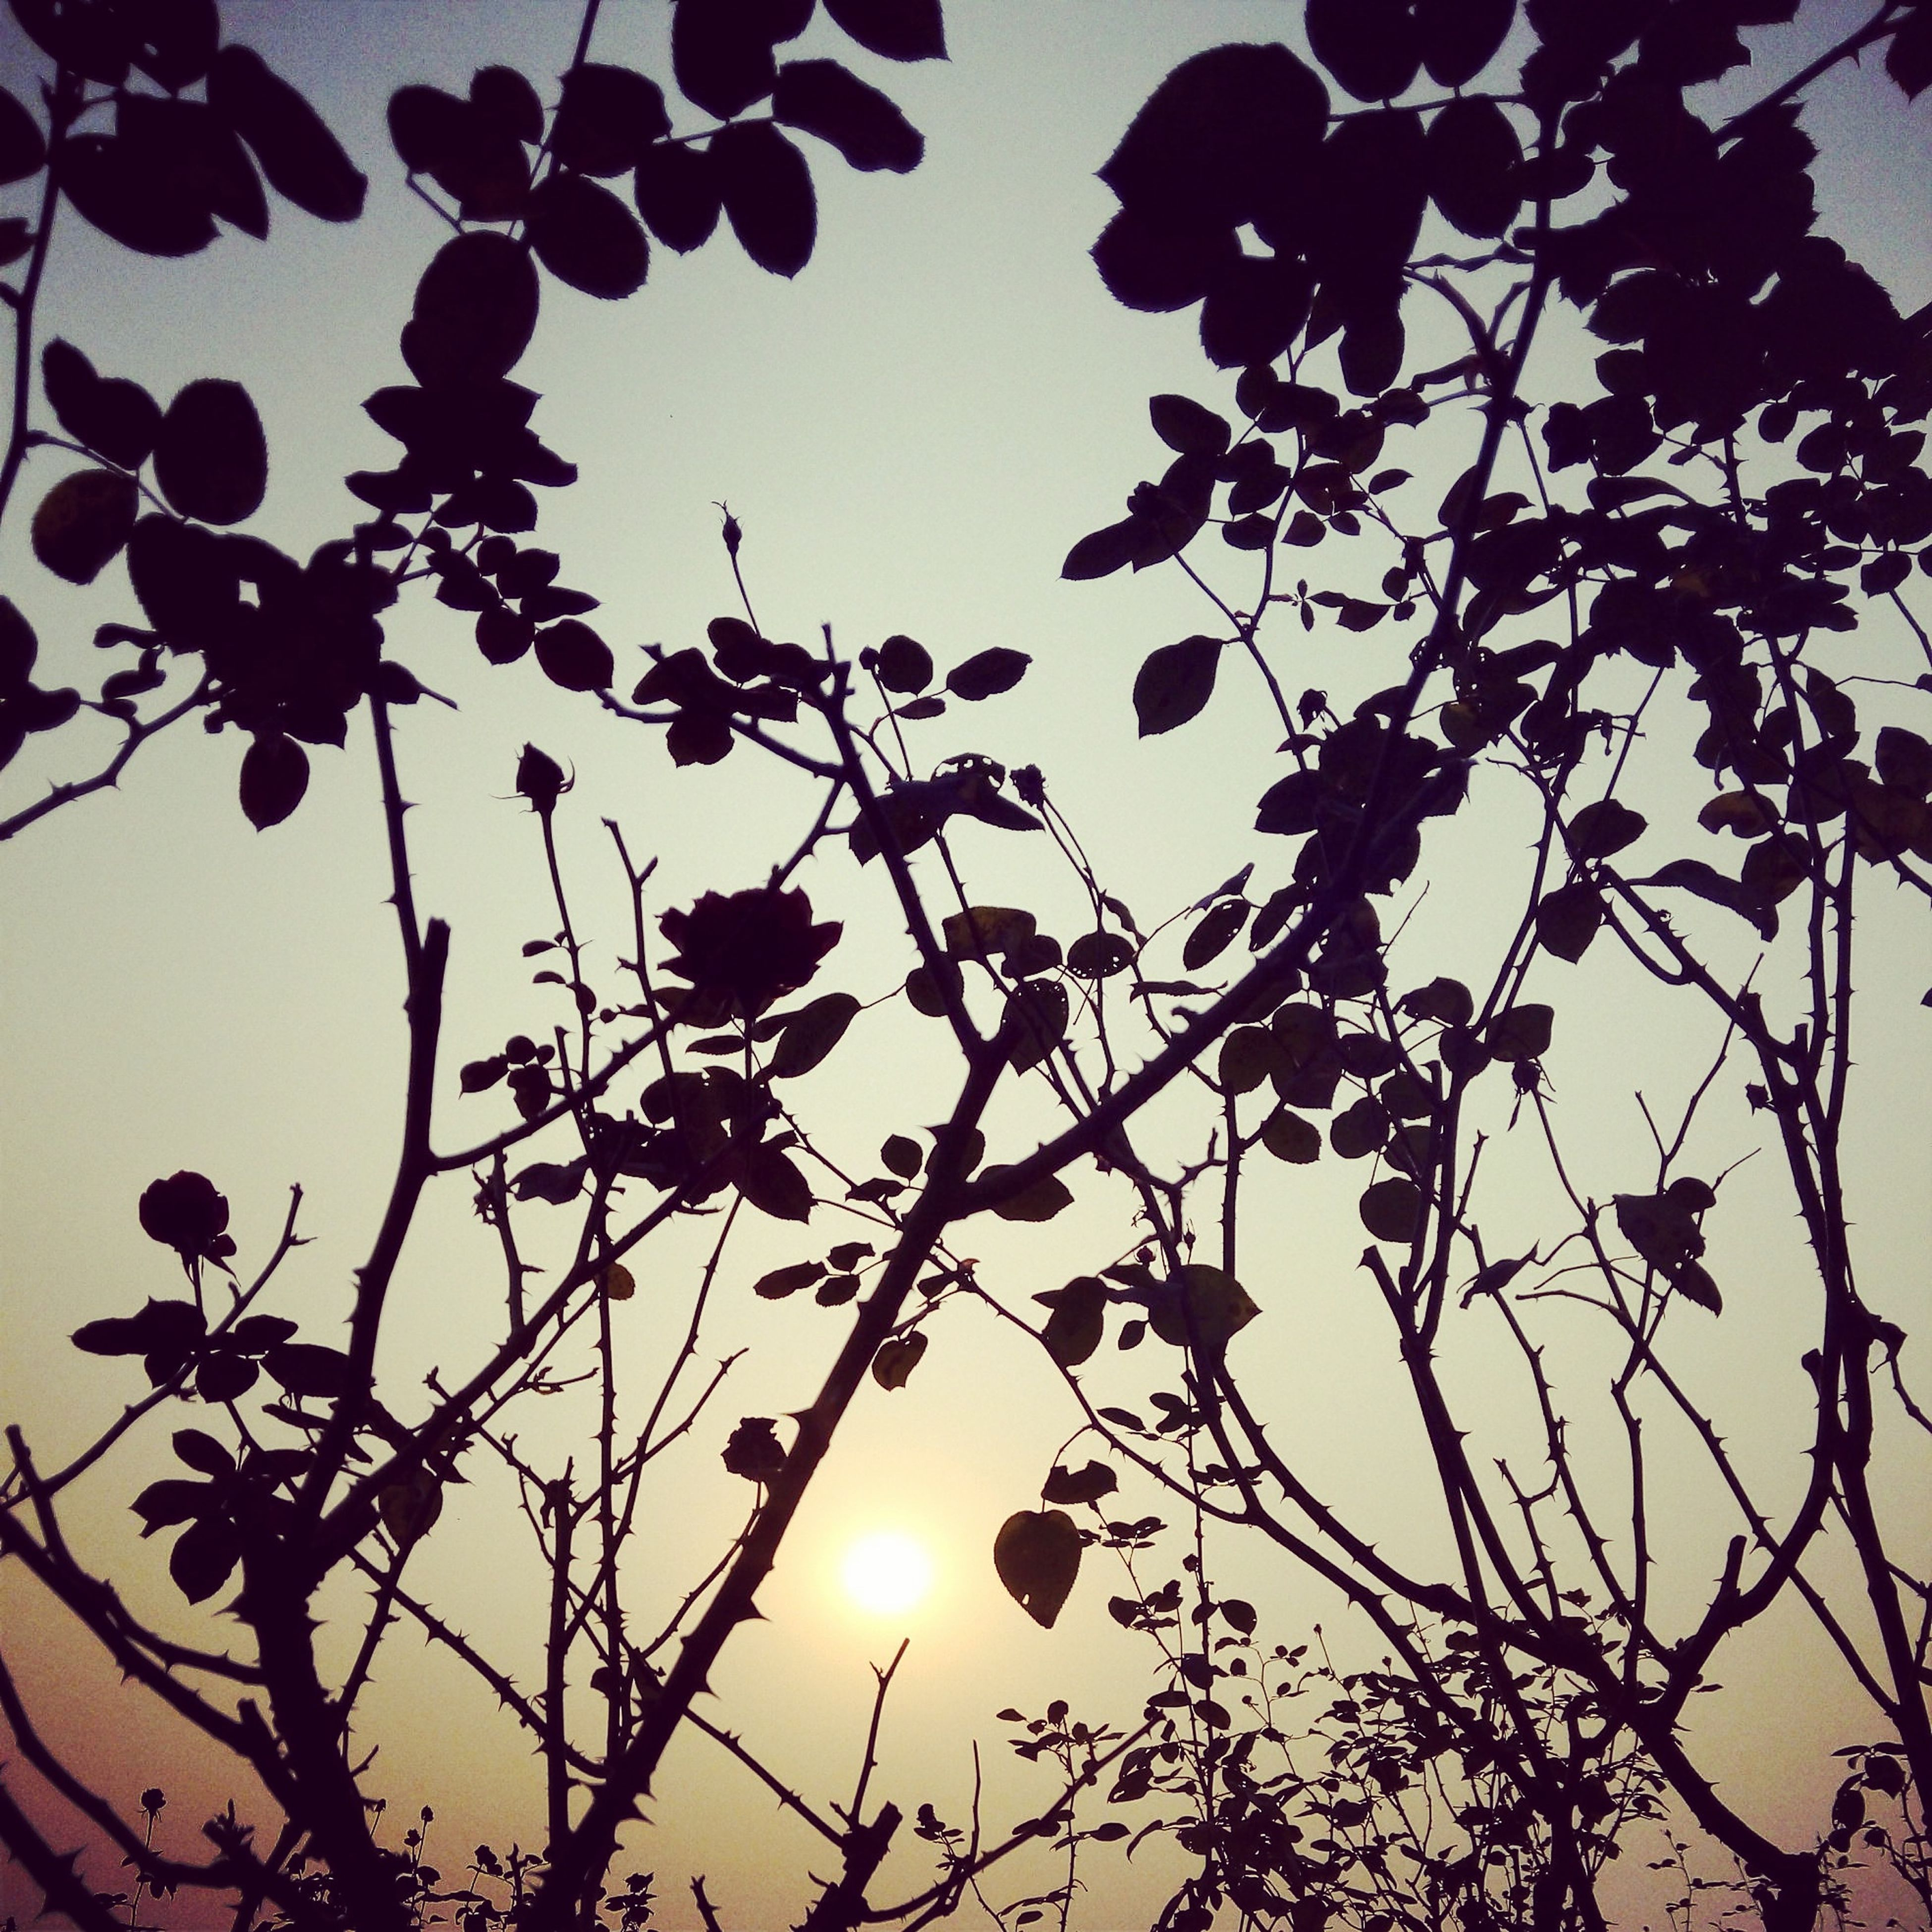 low angle view, branch, silhouette, tree, sun, sunset, sky, nature, growth, beauty in nature, leaf, outdoors, tranquility, no people, twig, sunlight, bare tree, dusk, high section, orange color